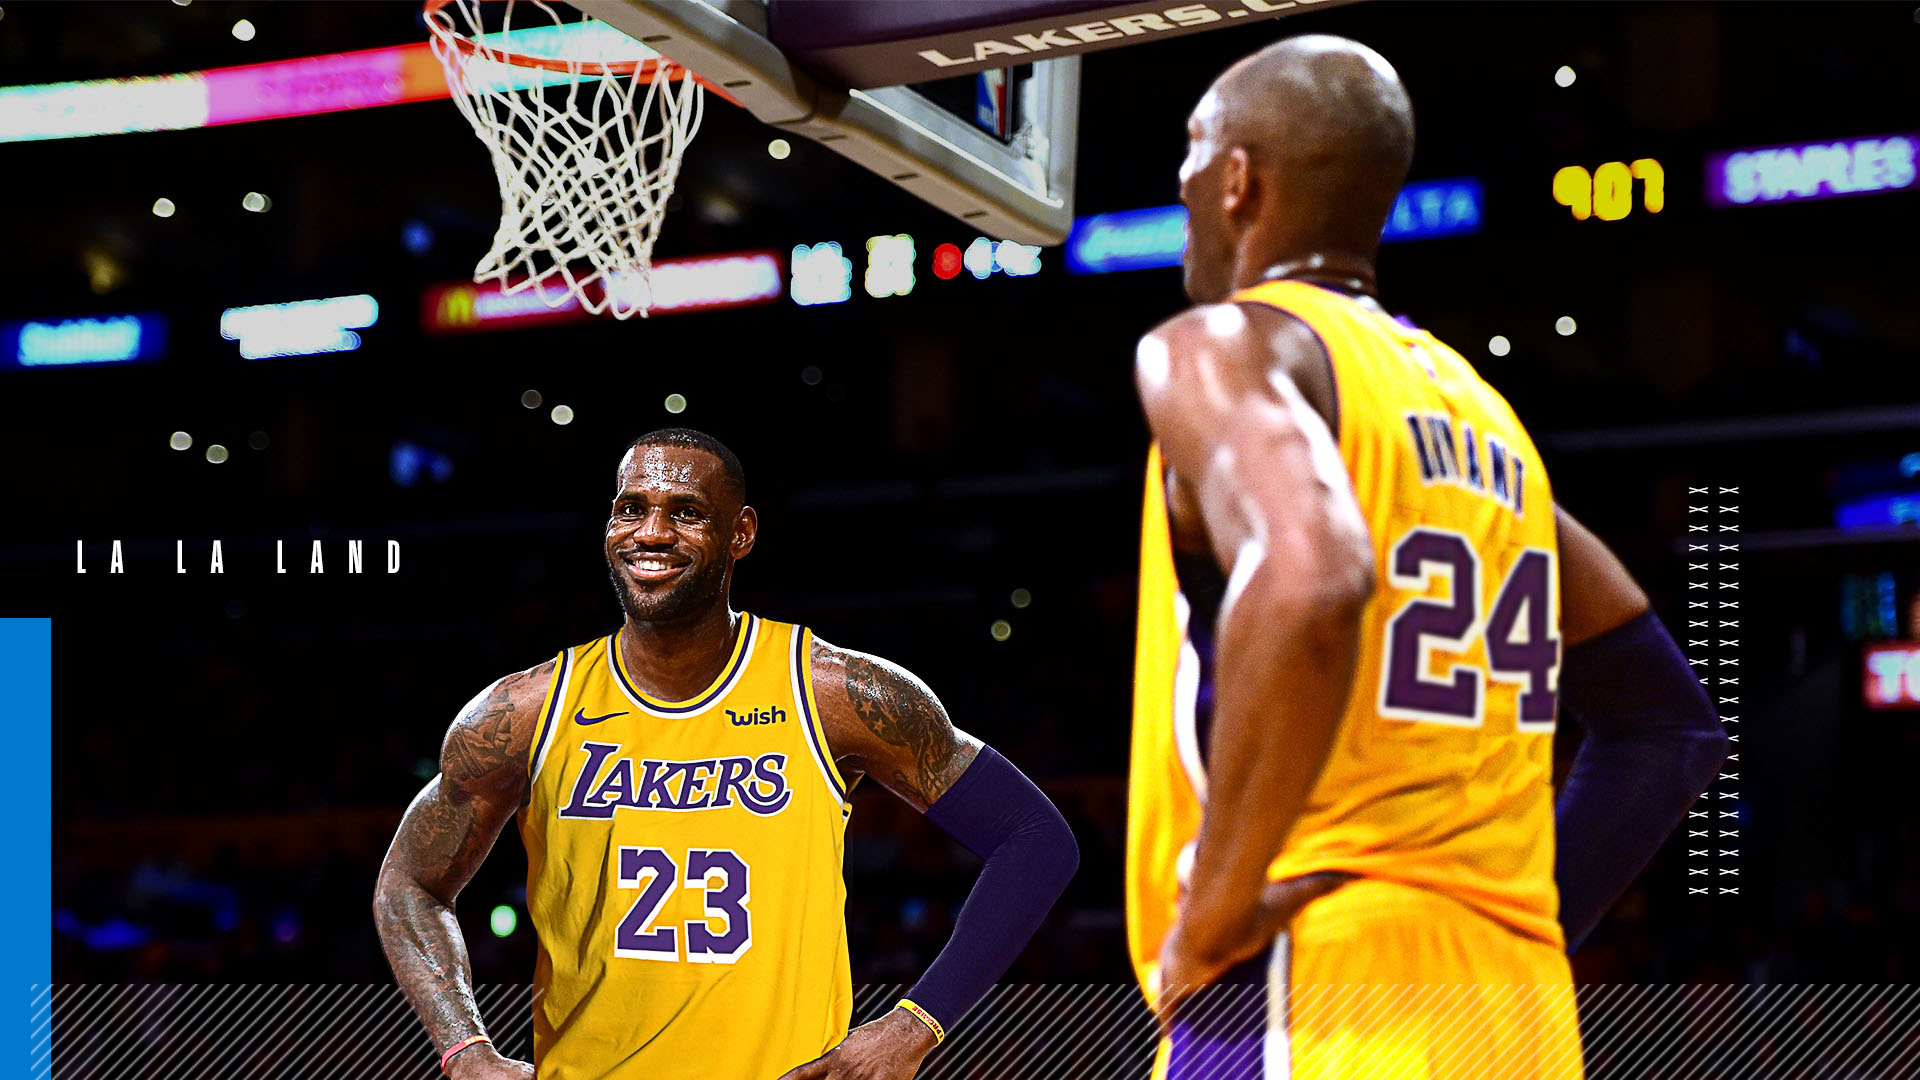 86eaeaaa What if Kobe Bryant came out of retirement to play with LeBron James? |  NBA.com Canada | The official site of the NBA. );